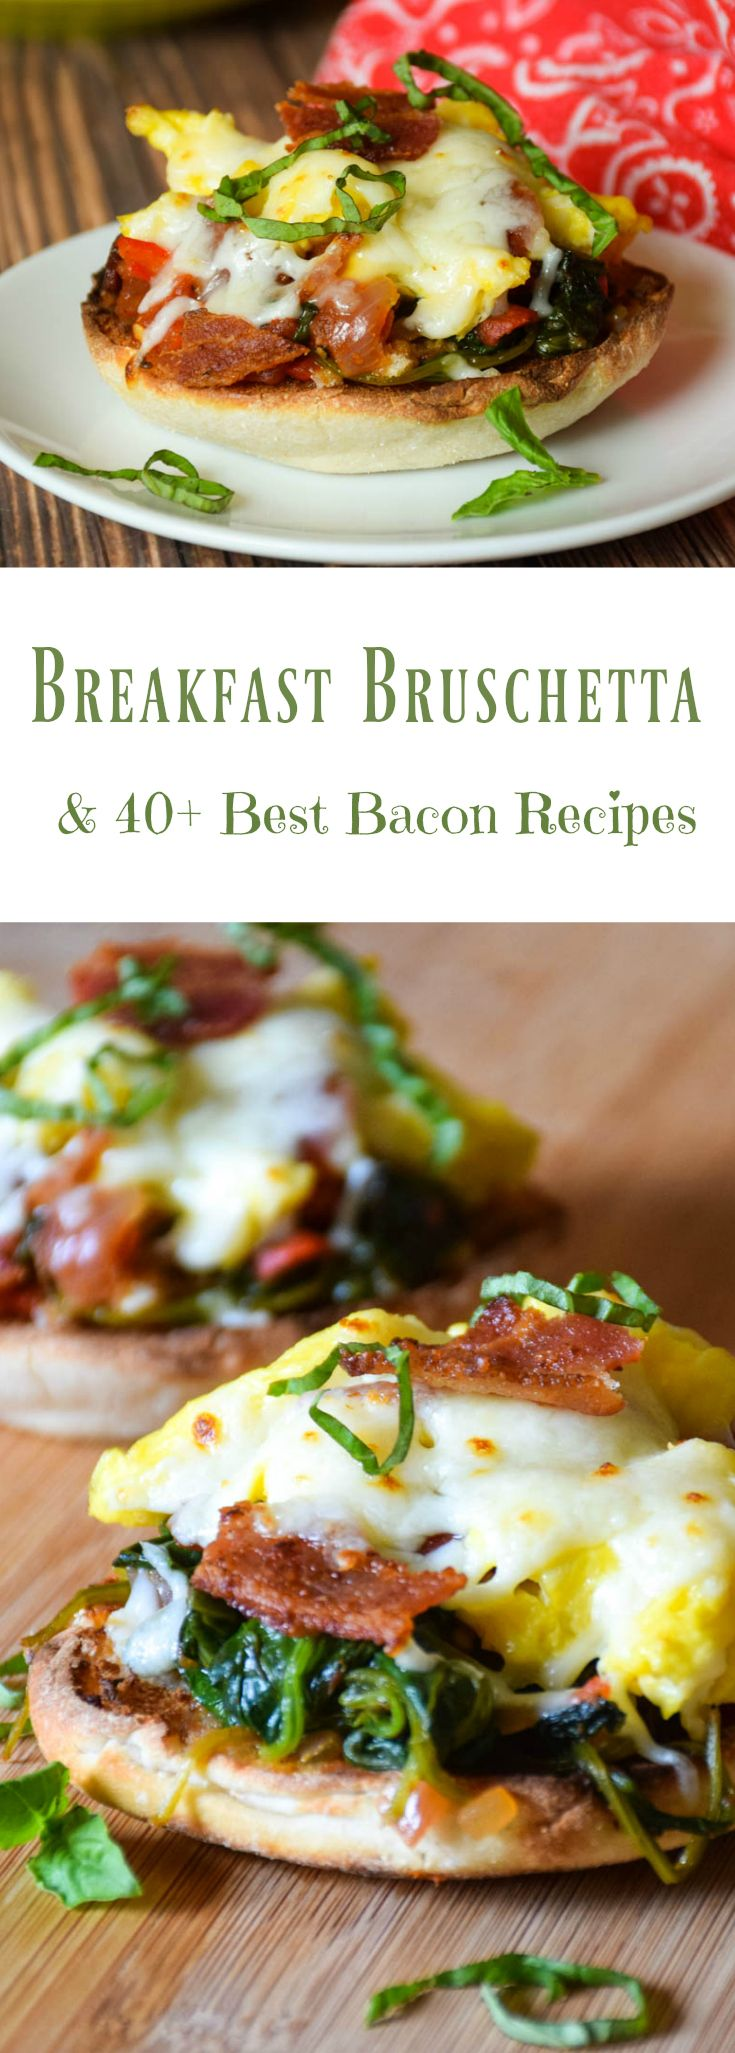 Breakfast Bruschetta